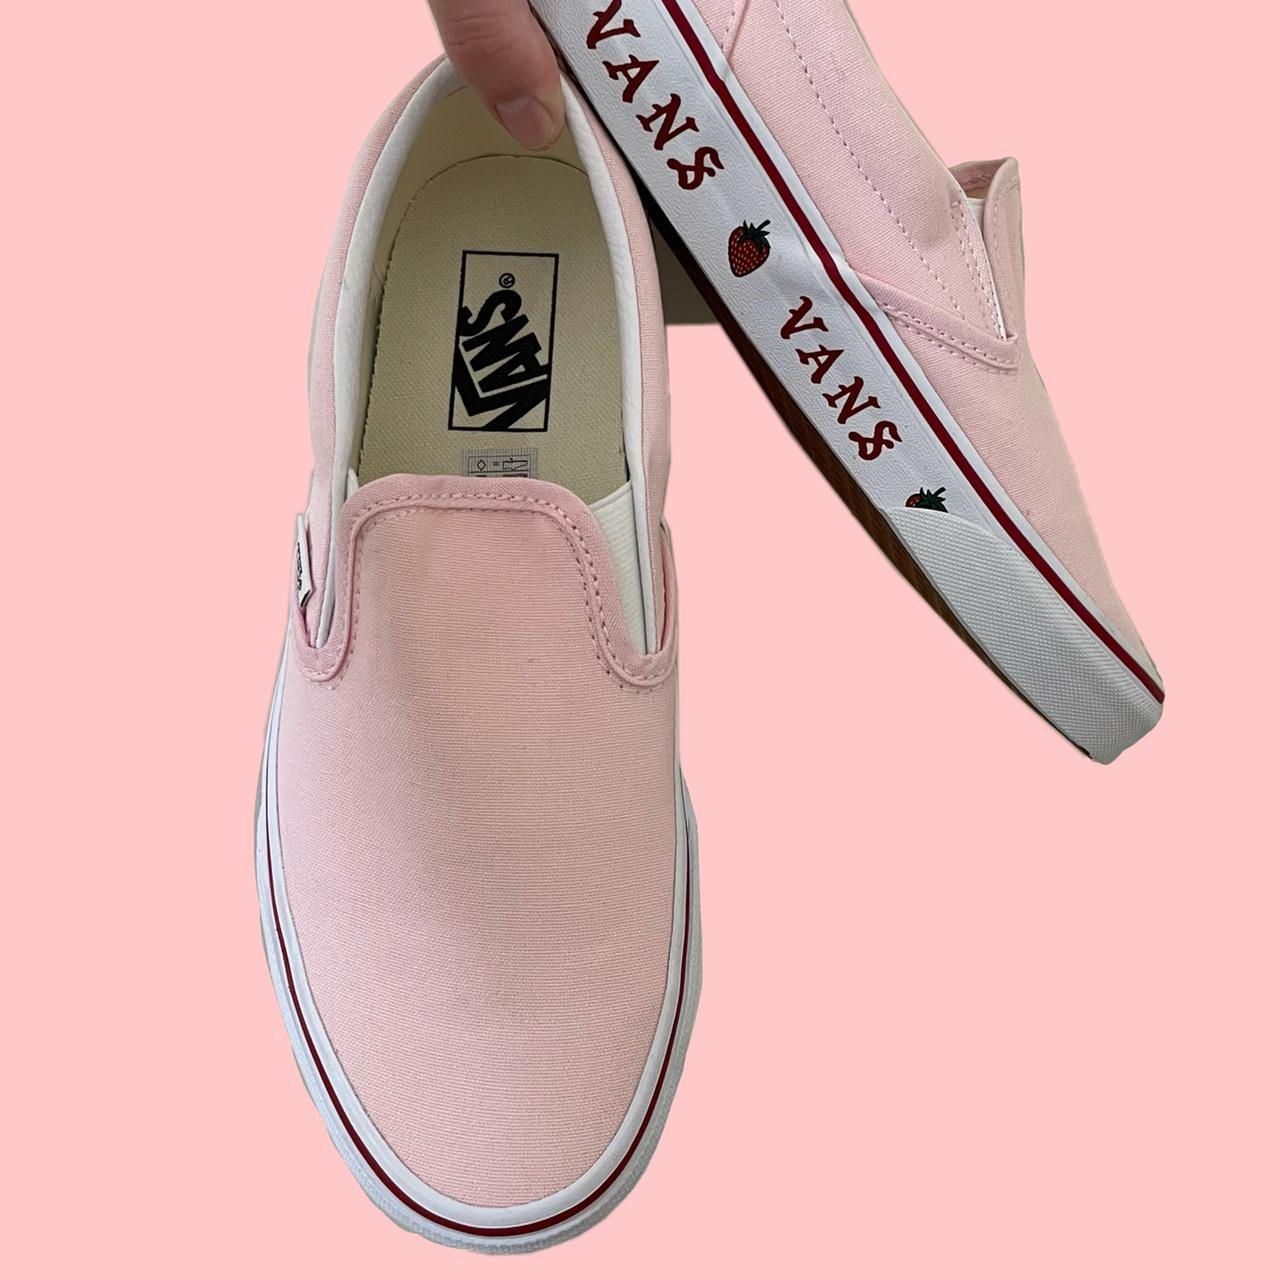 Product Image 1 - Vans Slip-On Strawberry Sidewall Pink